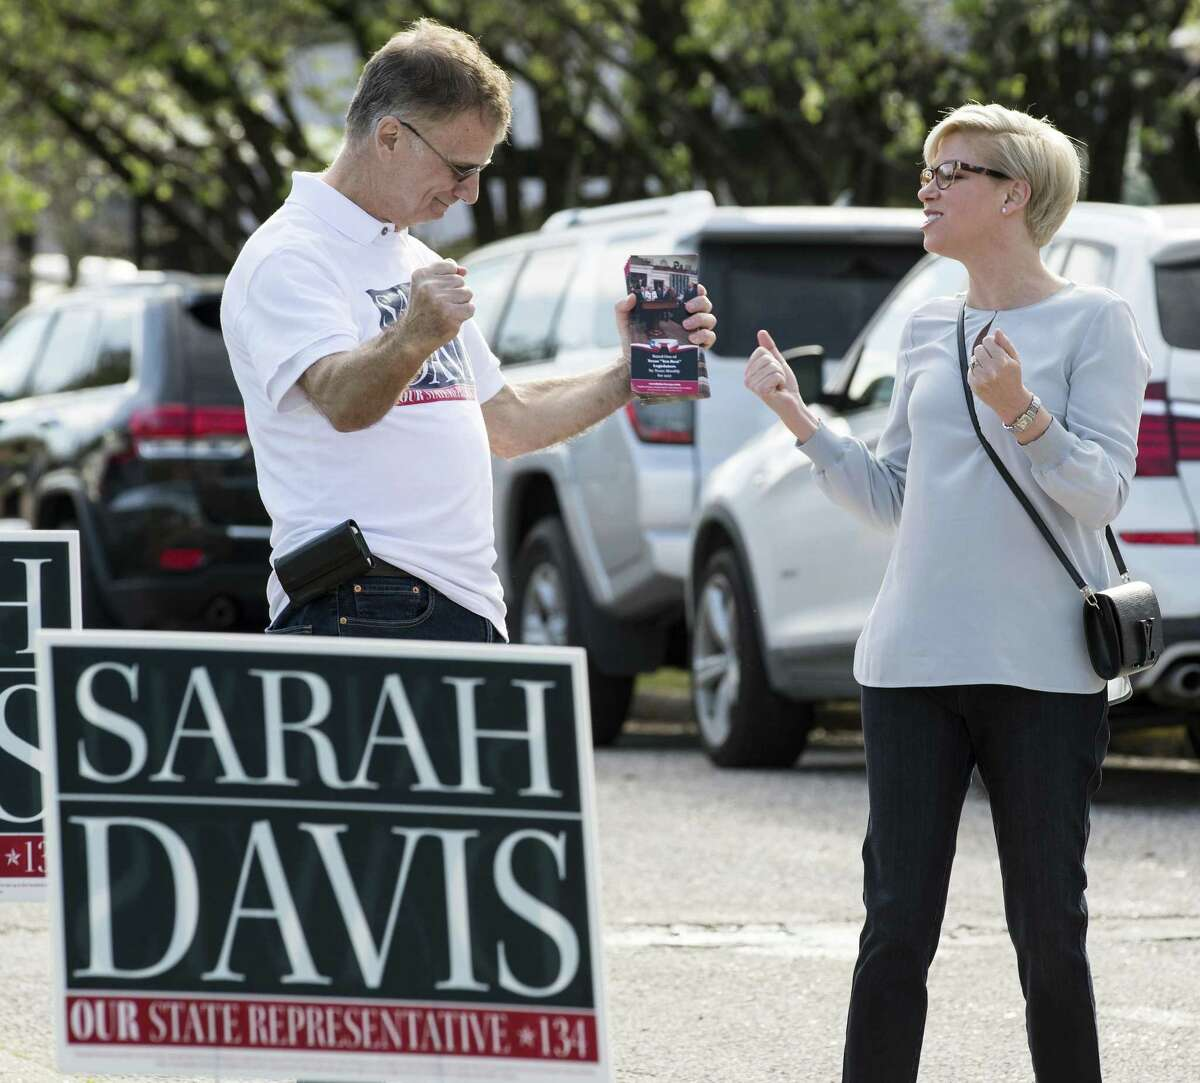 State Rep. Sarah Davis, R-Houston, speaks to campaign volunteer Michael Sternesky before voting in the primary election outside the polling place at West University Elementary on Tuesday, March 6, 2018, in Houston. Davis is running for re-election in the Texas House of Representatives, District 134. ( Brett Coomer / Houston Chronicle )